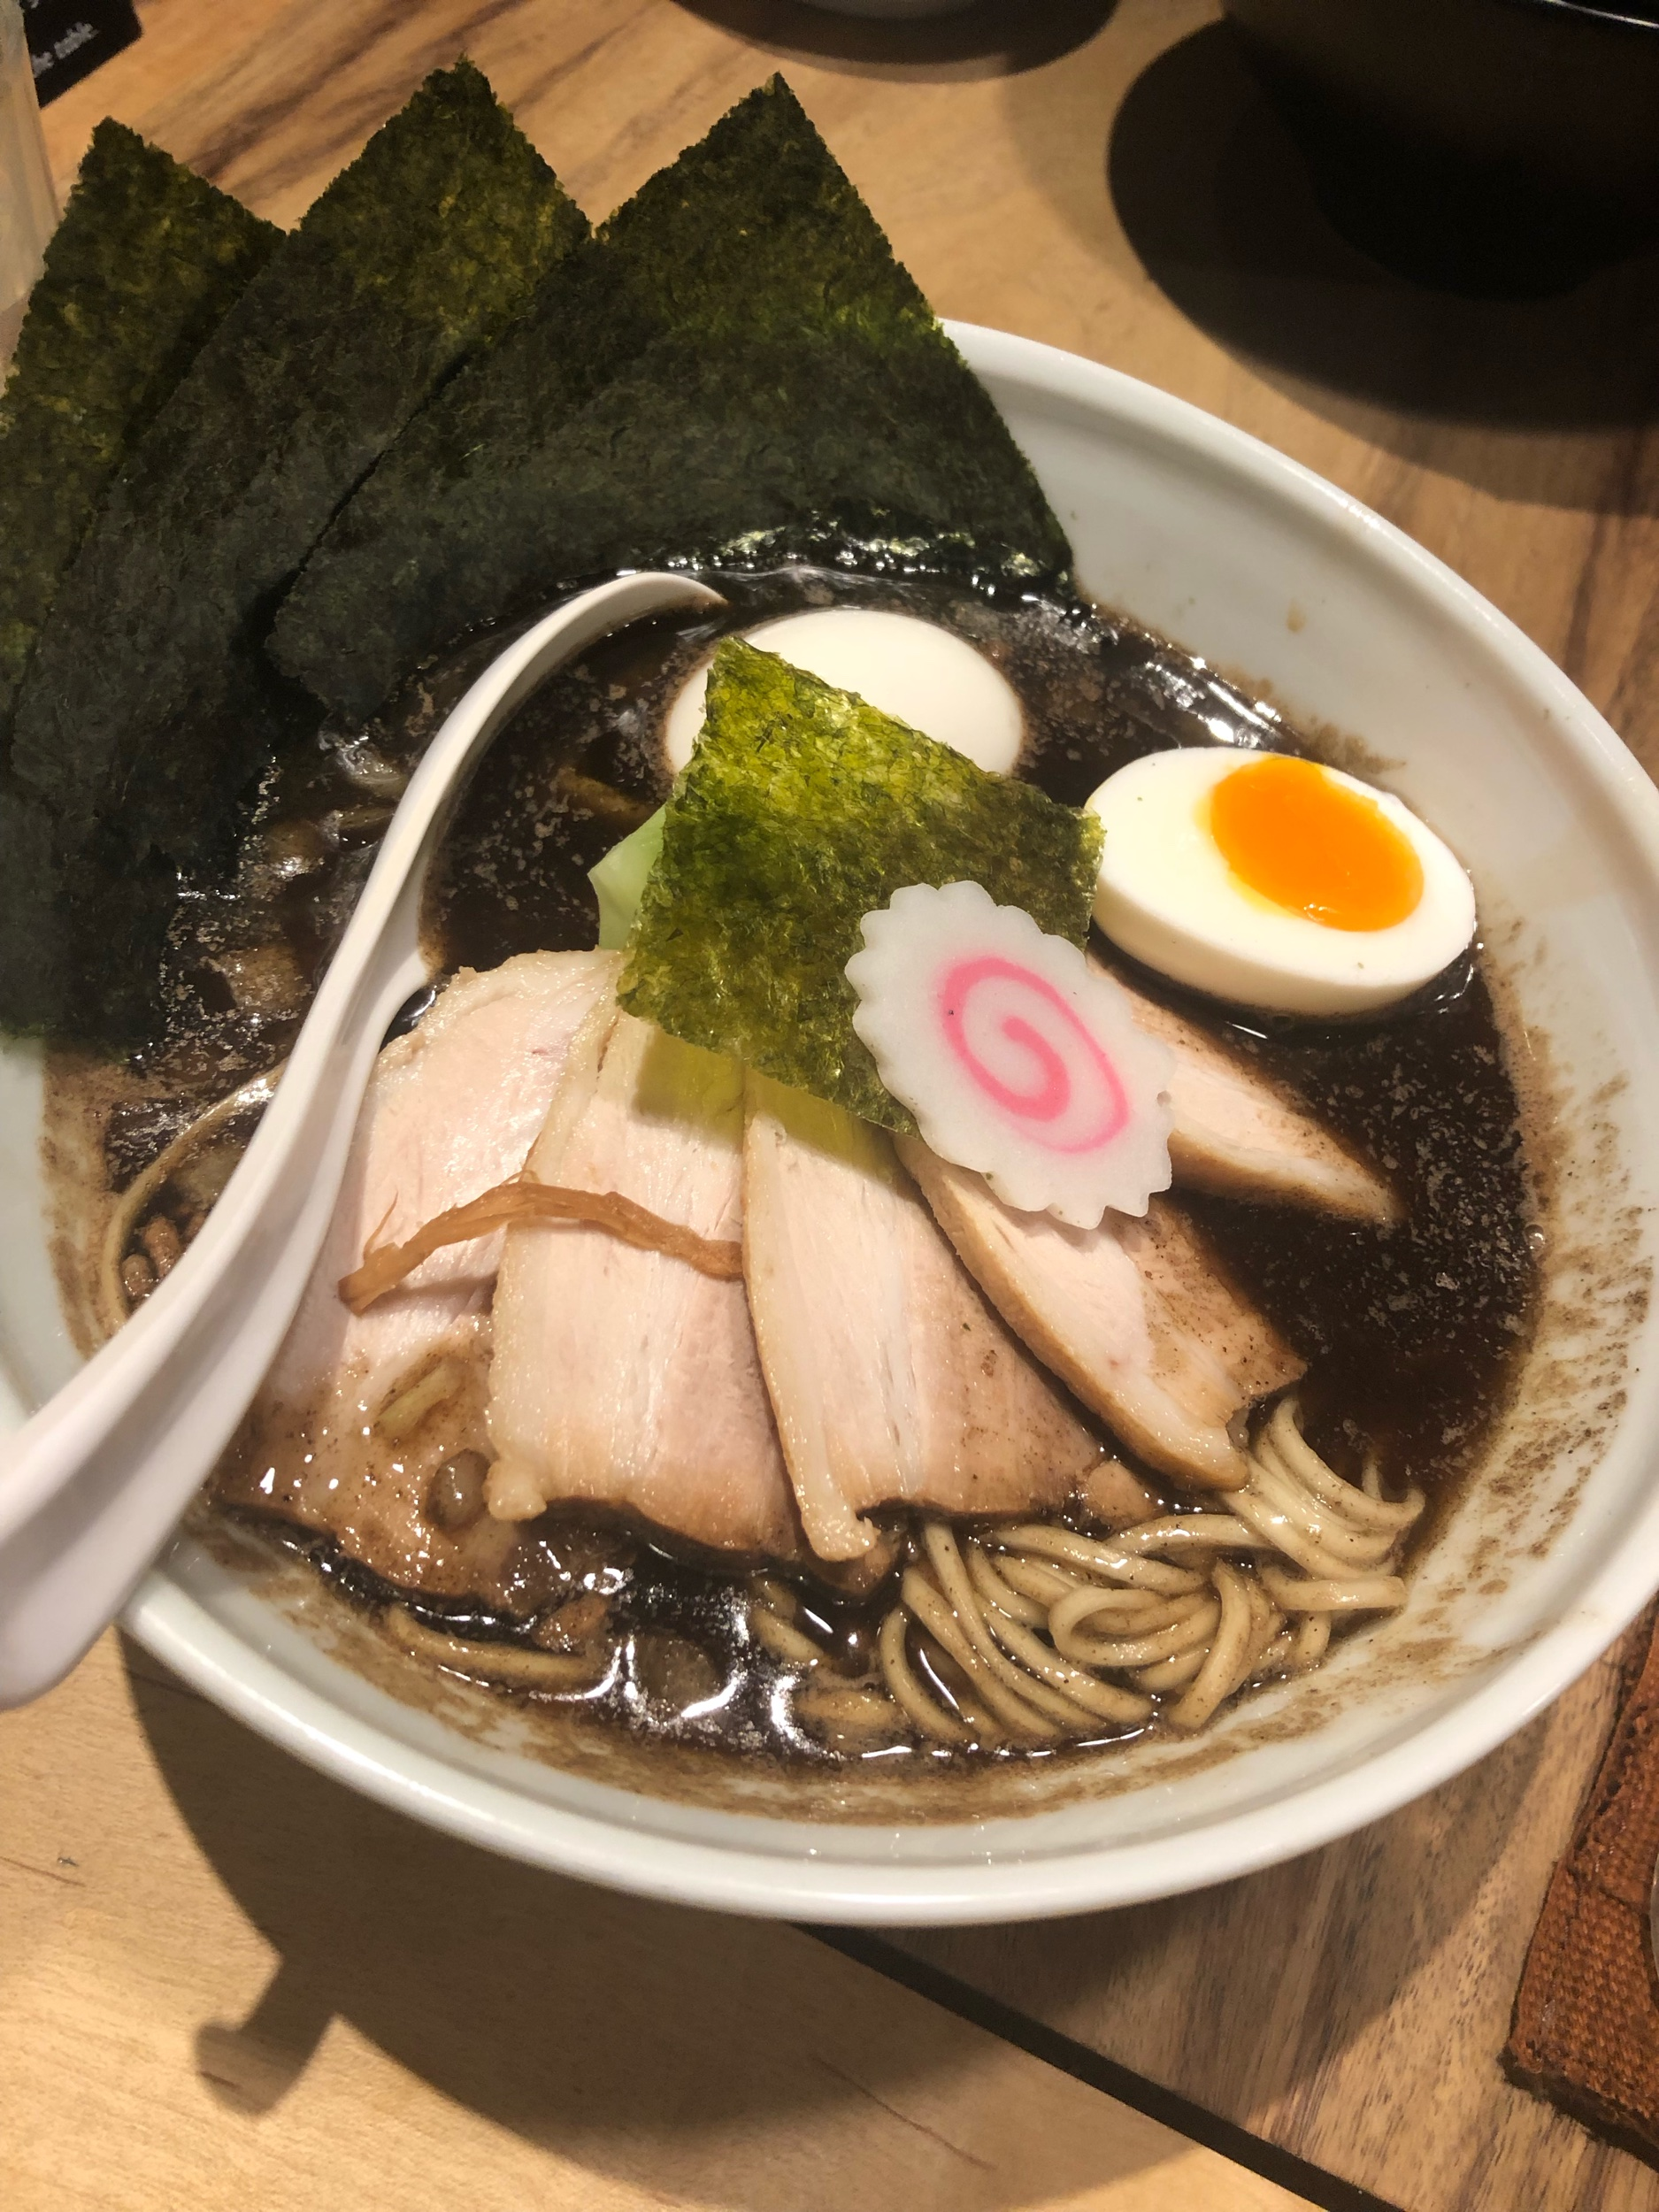 My Shoyu Ramen with all the toppings